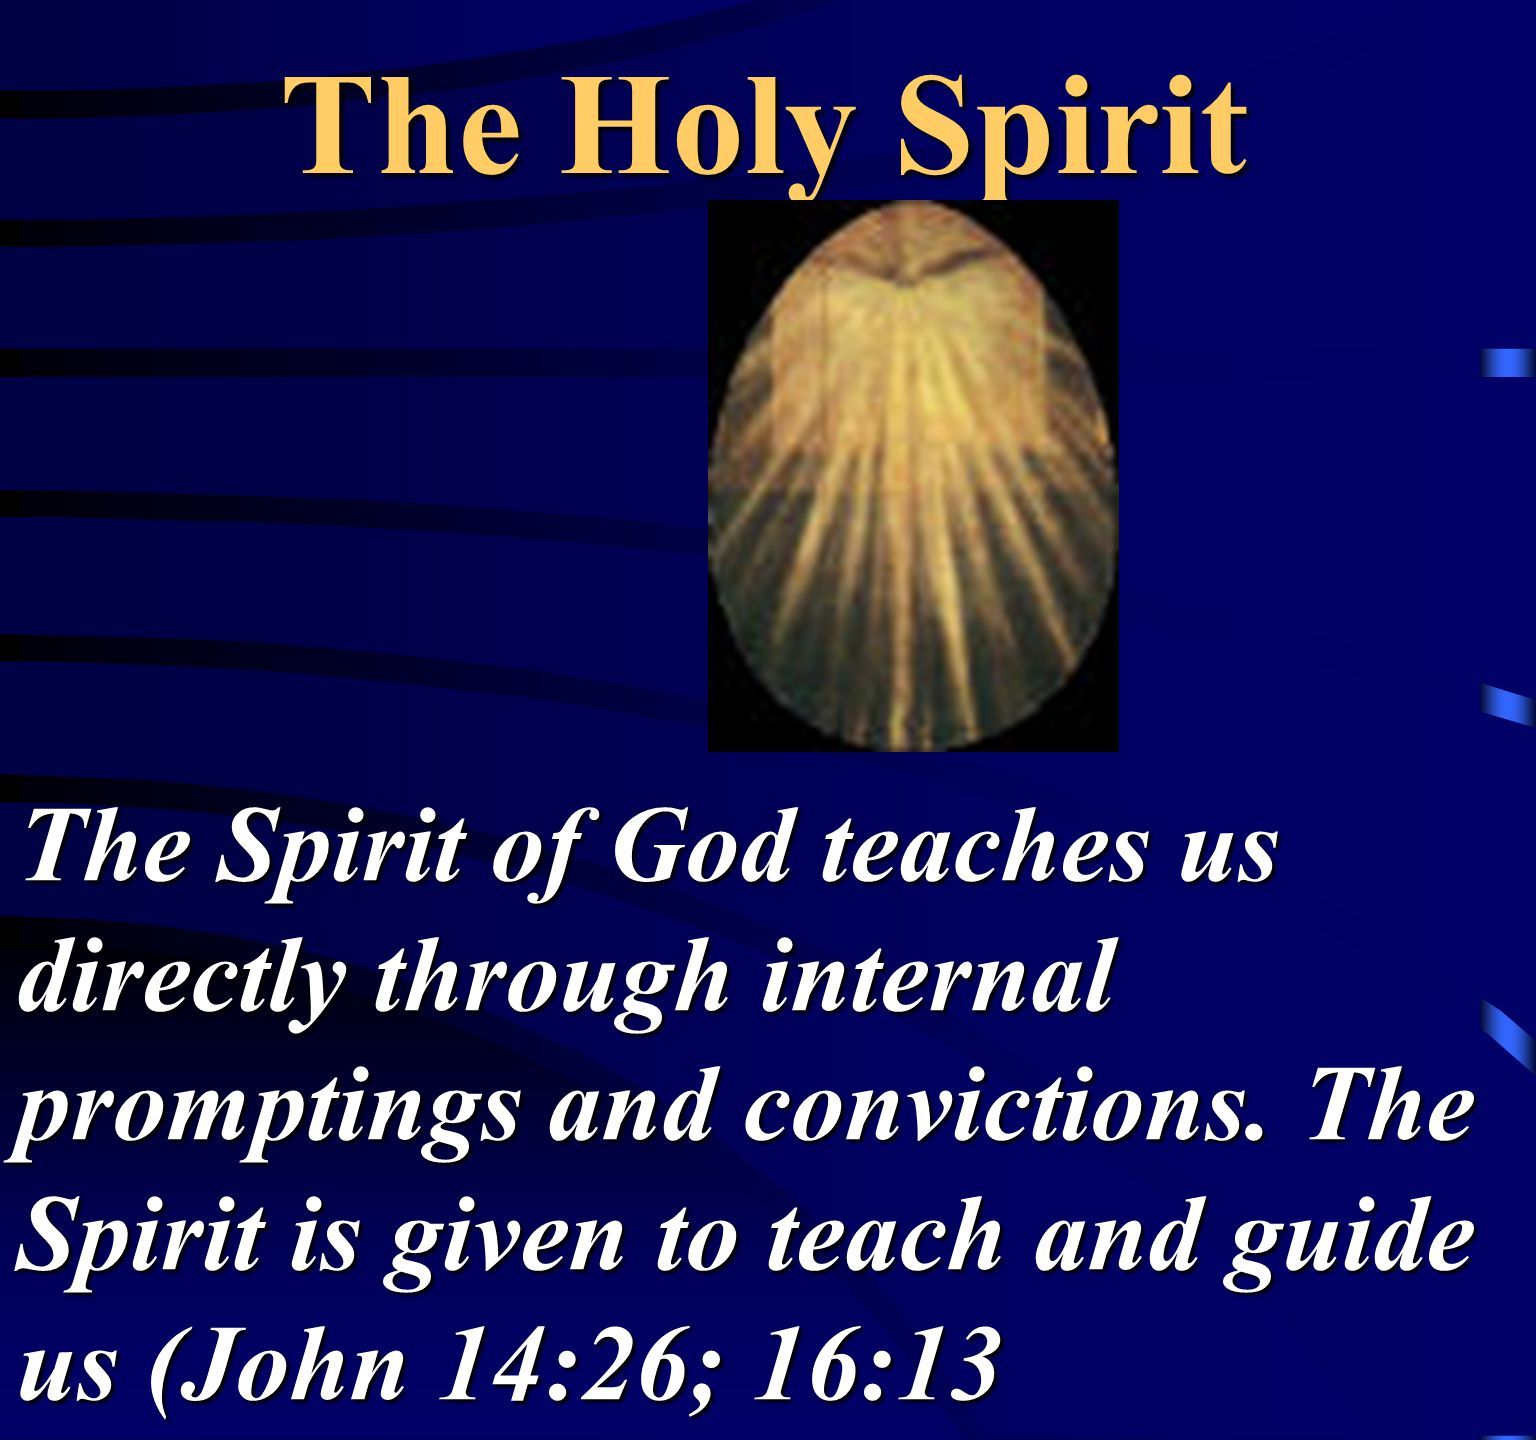 The Holy Spirit The Spirit of God teaches us directly through internal promptings and convictions.